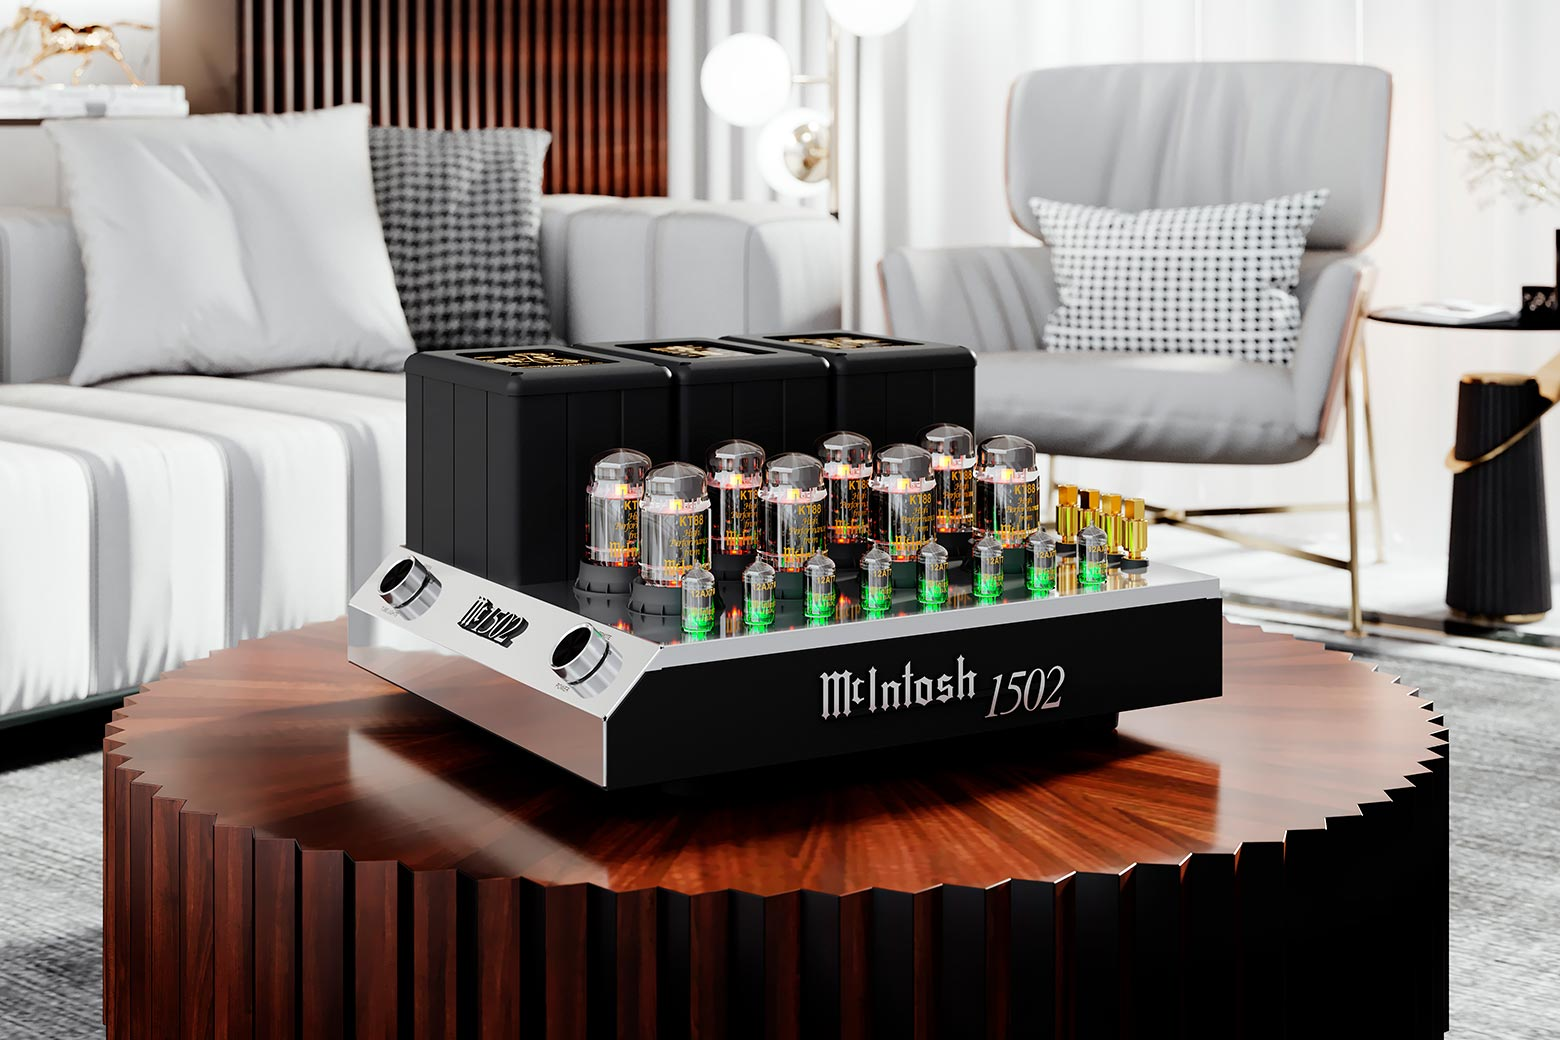 UPCOMING AMPLIFIER CLASSIC: REVIEW: MCINTOSH MC1502